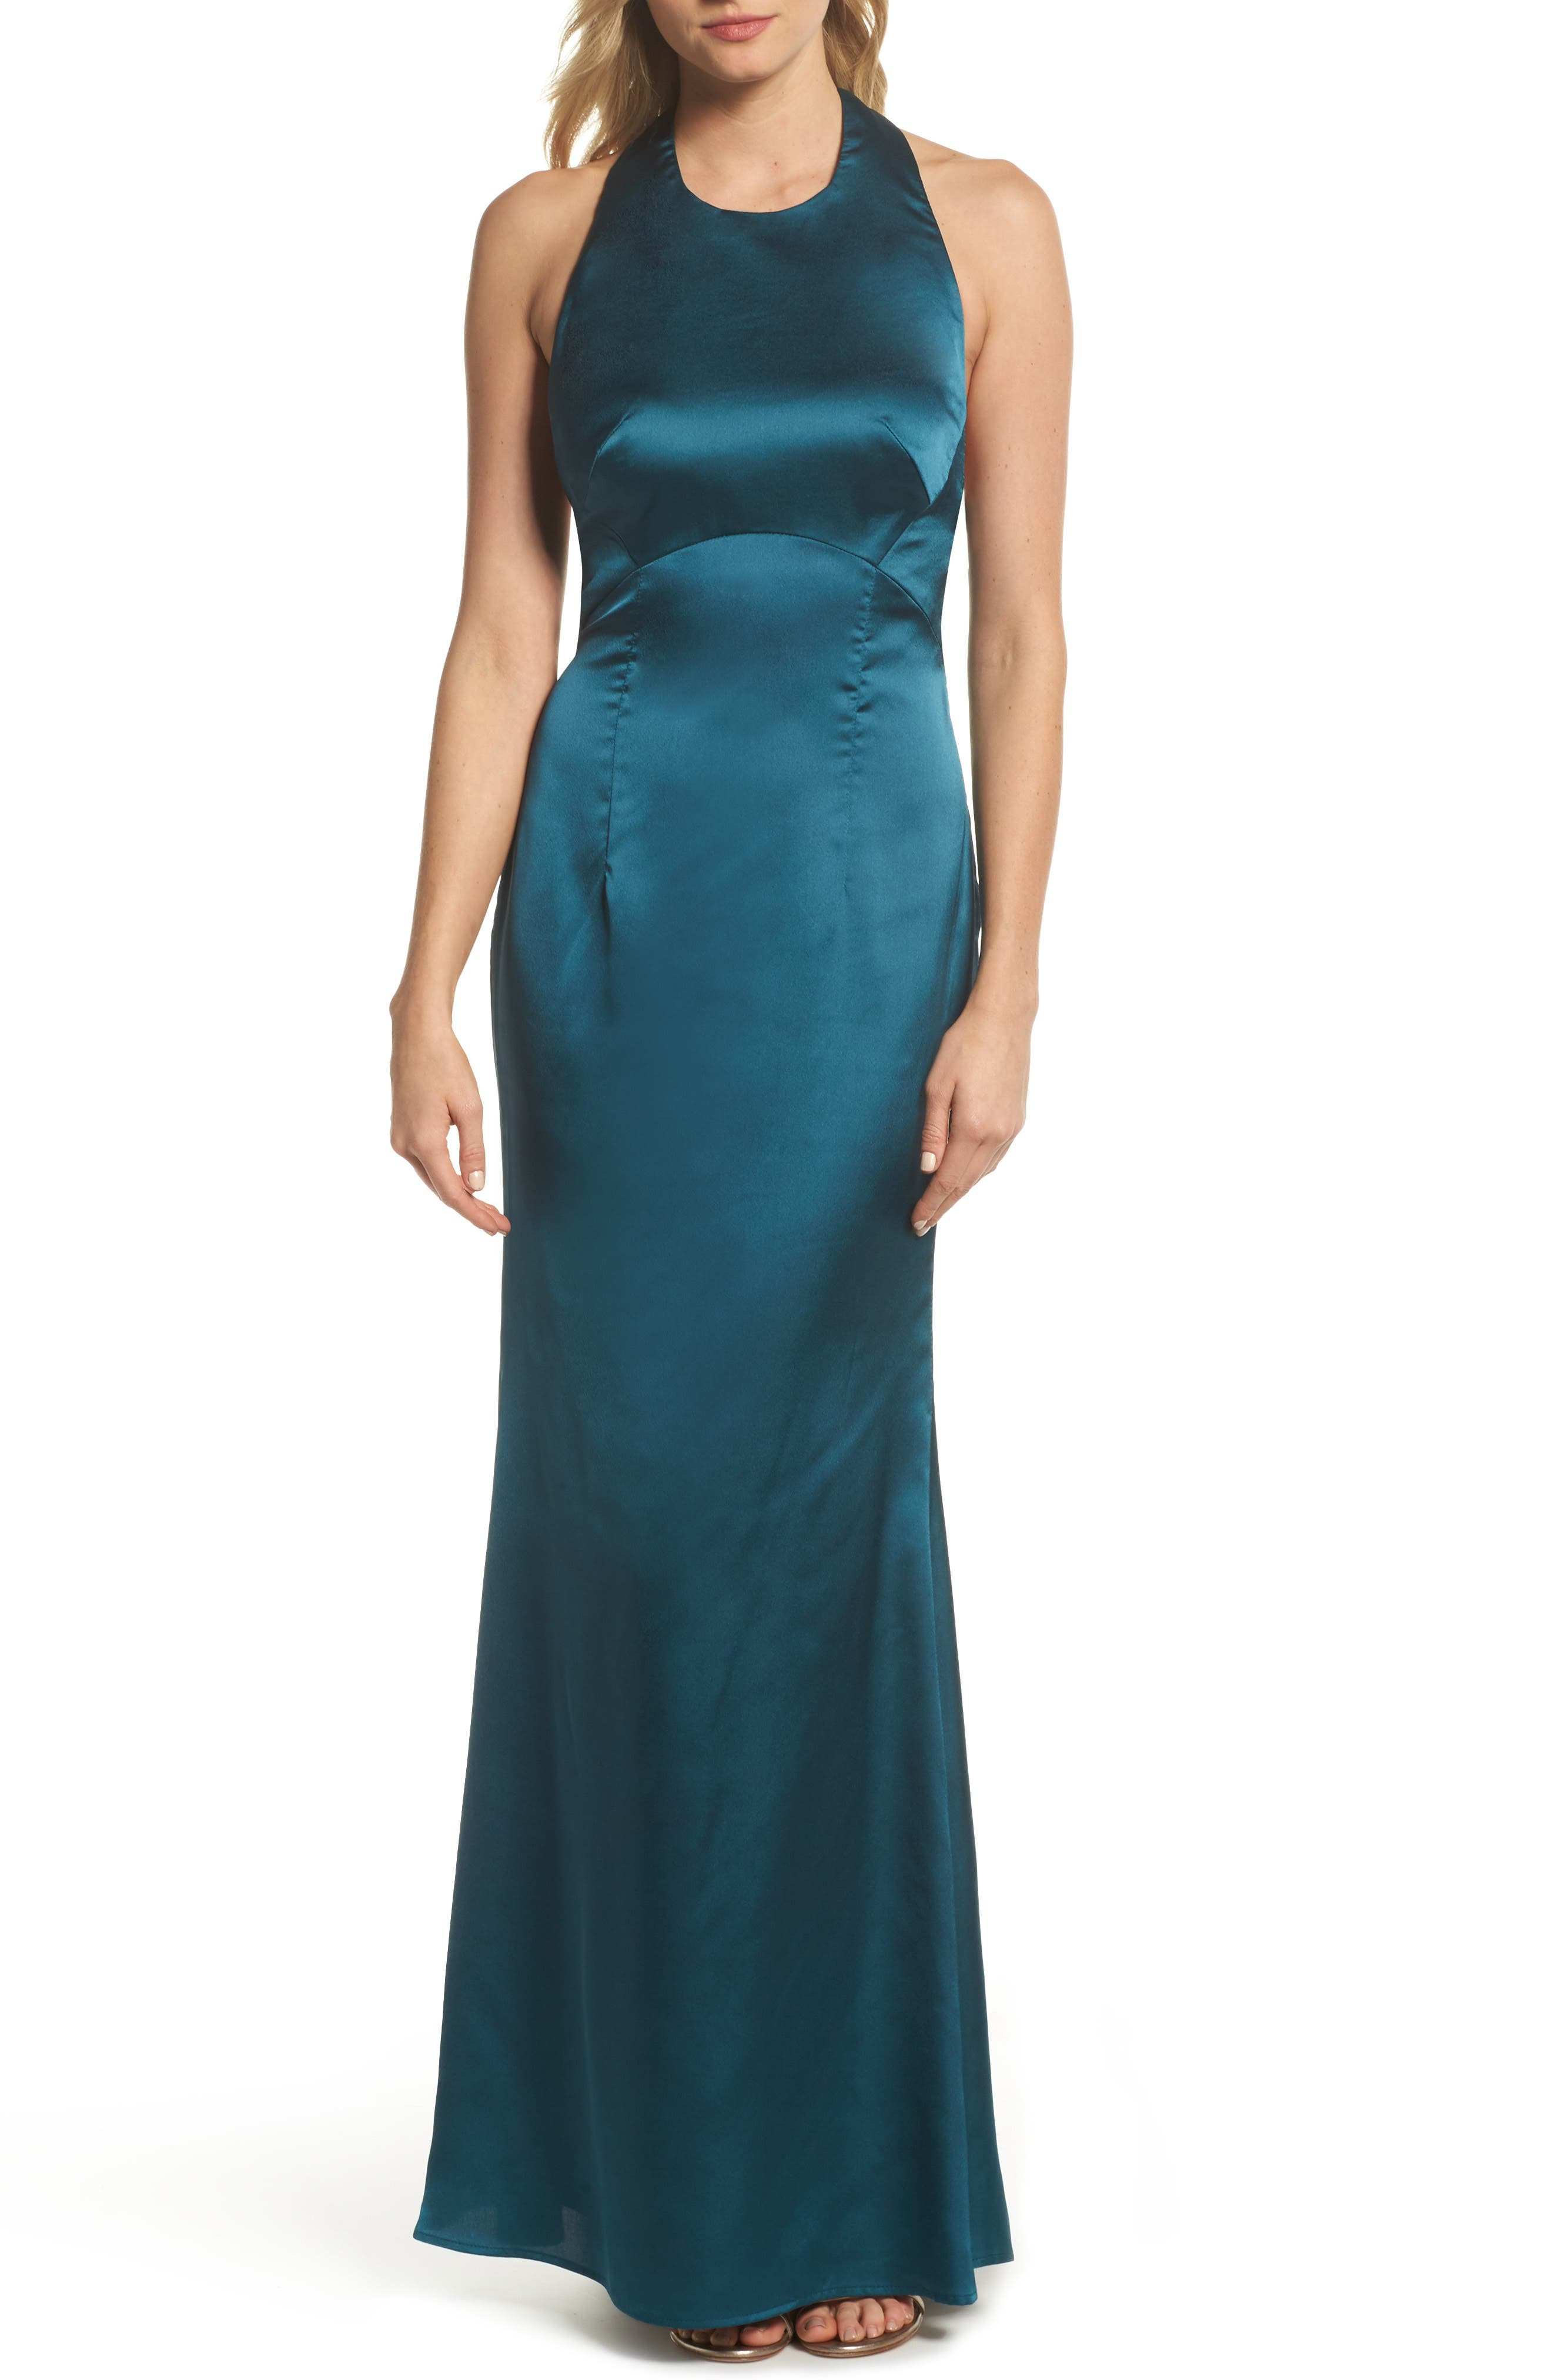 Trixie Halter Gown,                         Main,                         color, Green